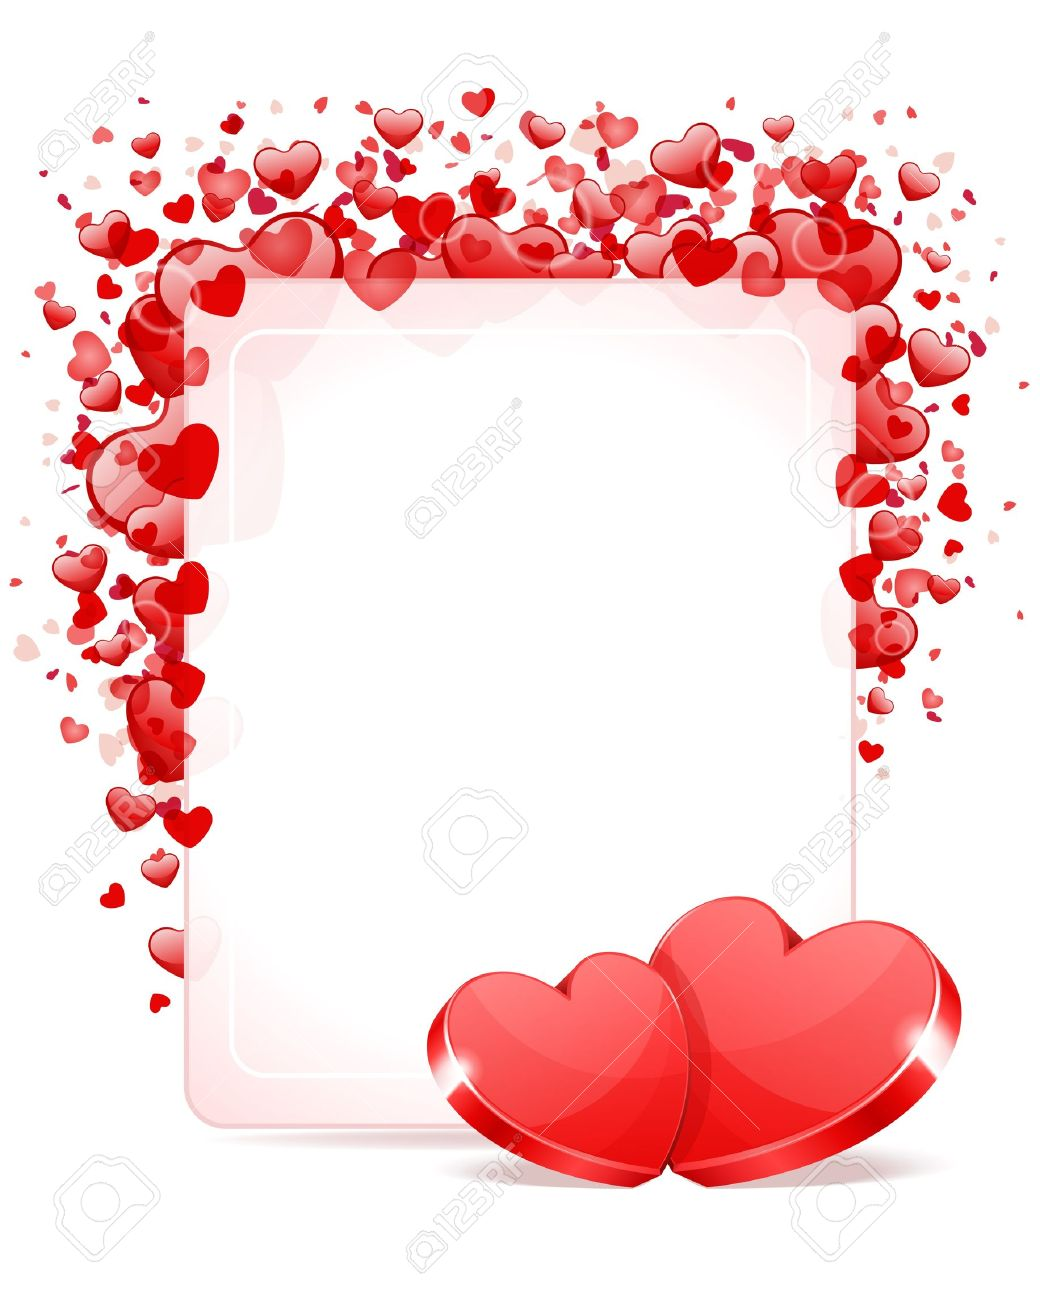 Two Hearts With Card Frame Valentine Day Vector Background Royalty